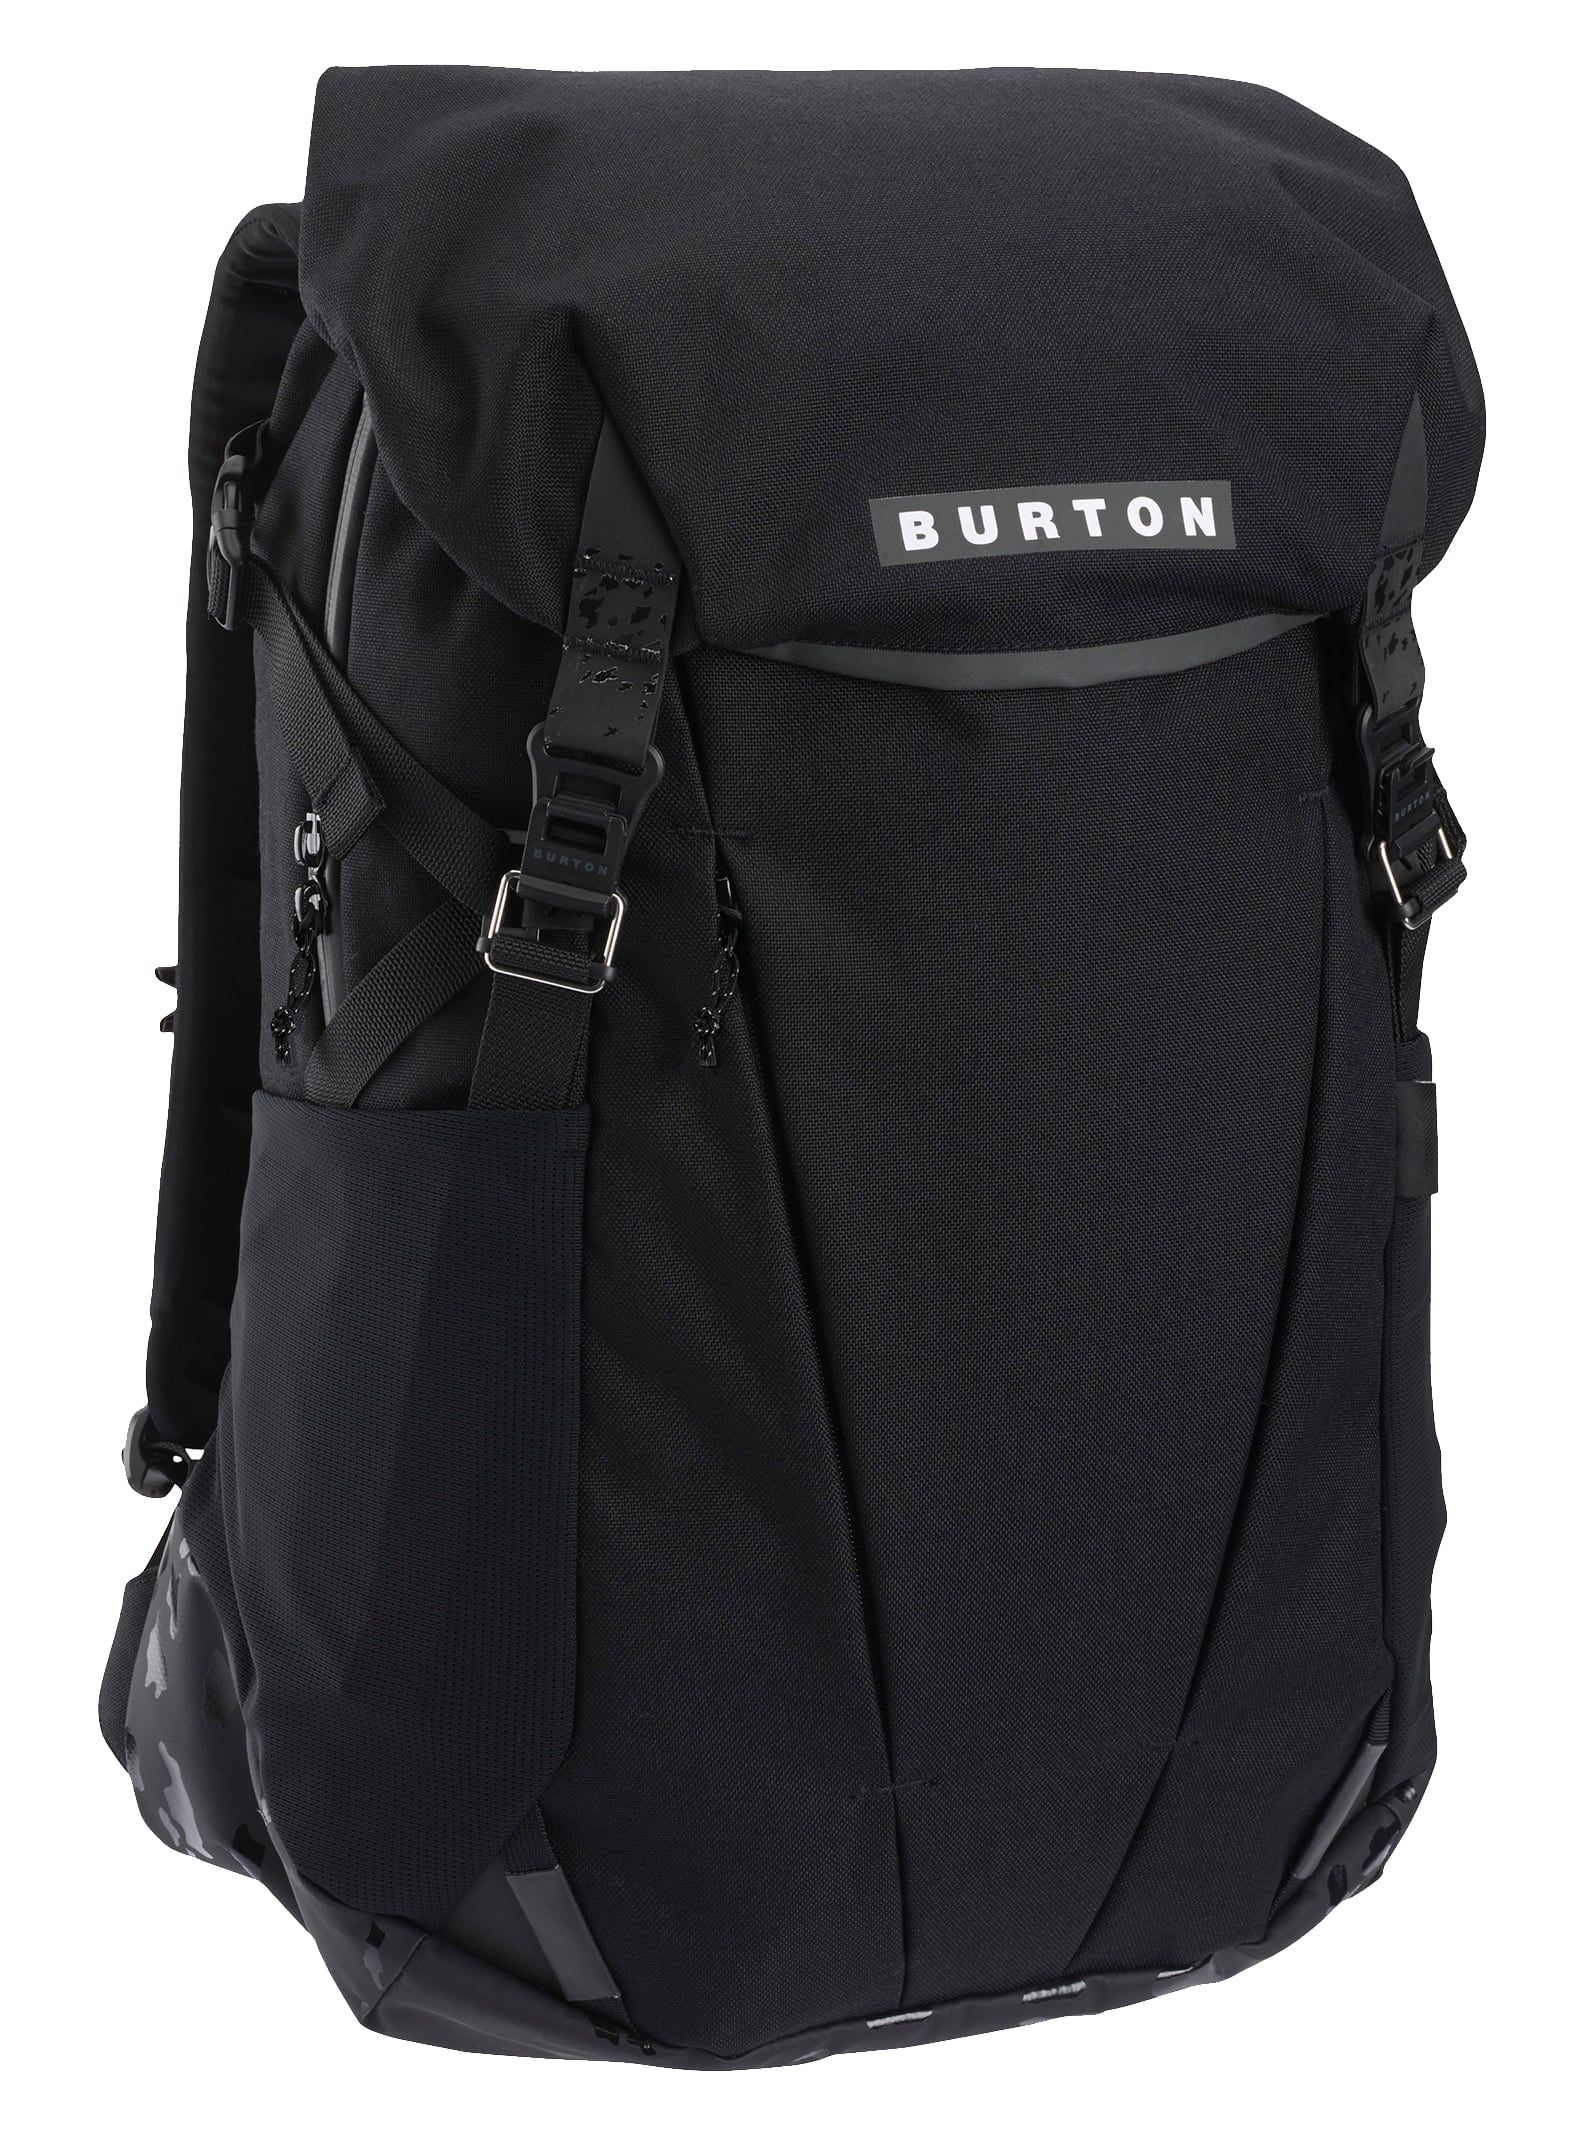 Burton Spruce Backpack Laptop Backpack, Backpack Bags, Burton Snowboards, Duffel  Bag, Snowboarding 6a138cbaff